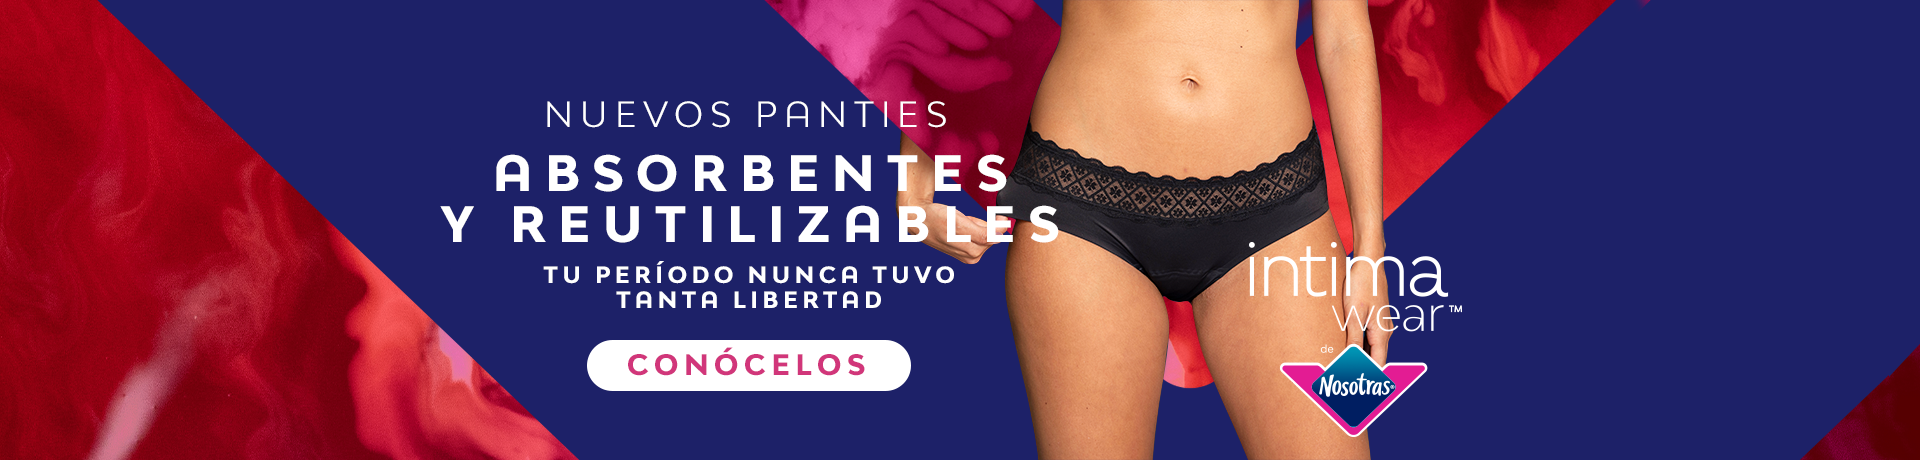 Banner inferior nuevos panties intima wear